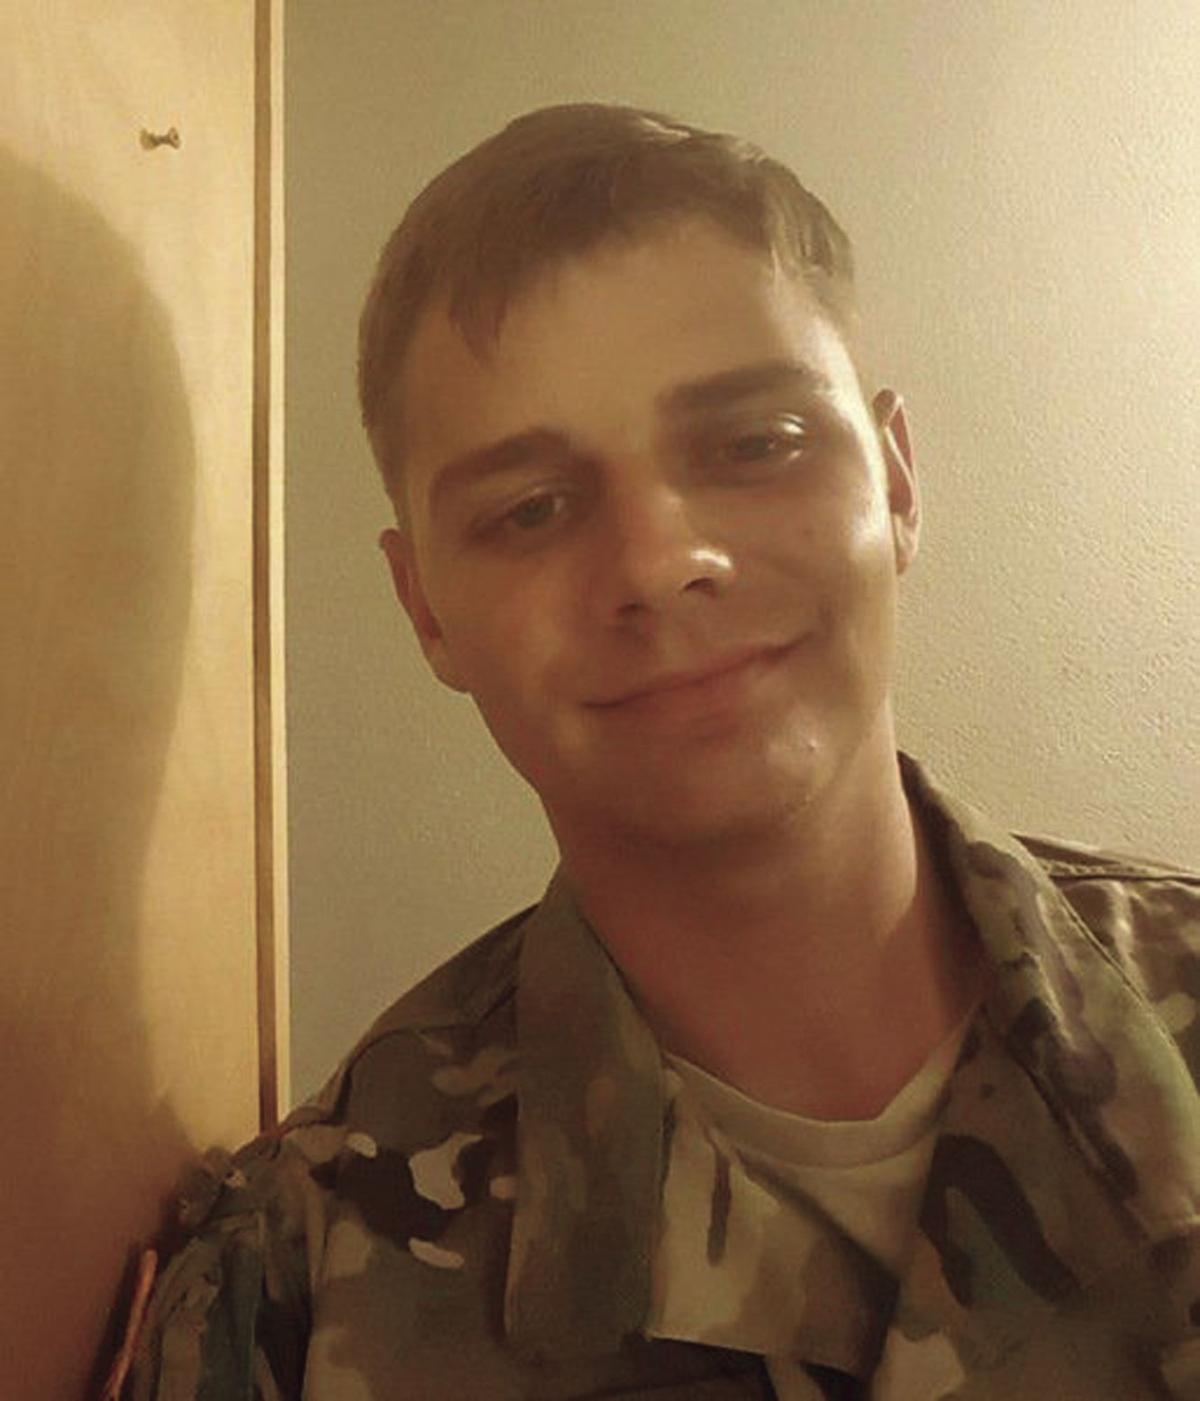 Jonathon Busbin, 23, was a veteran of the Army Airborne Infantry. He committed suicide in October 2017.